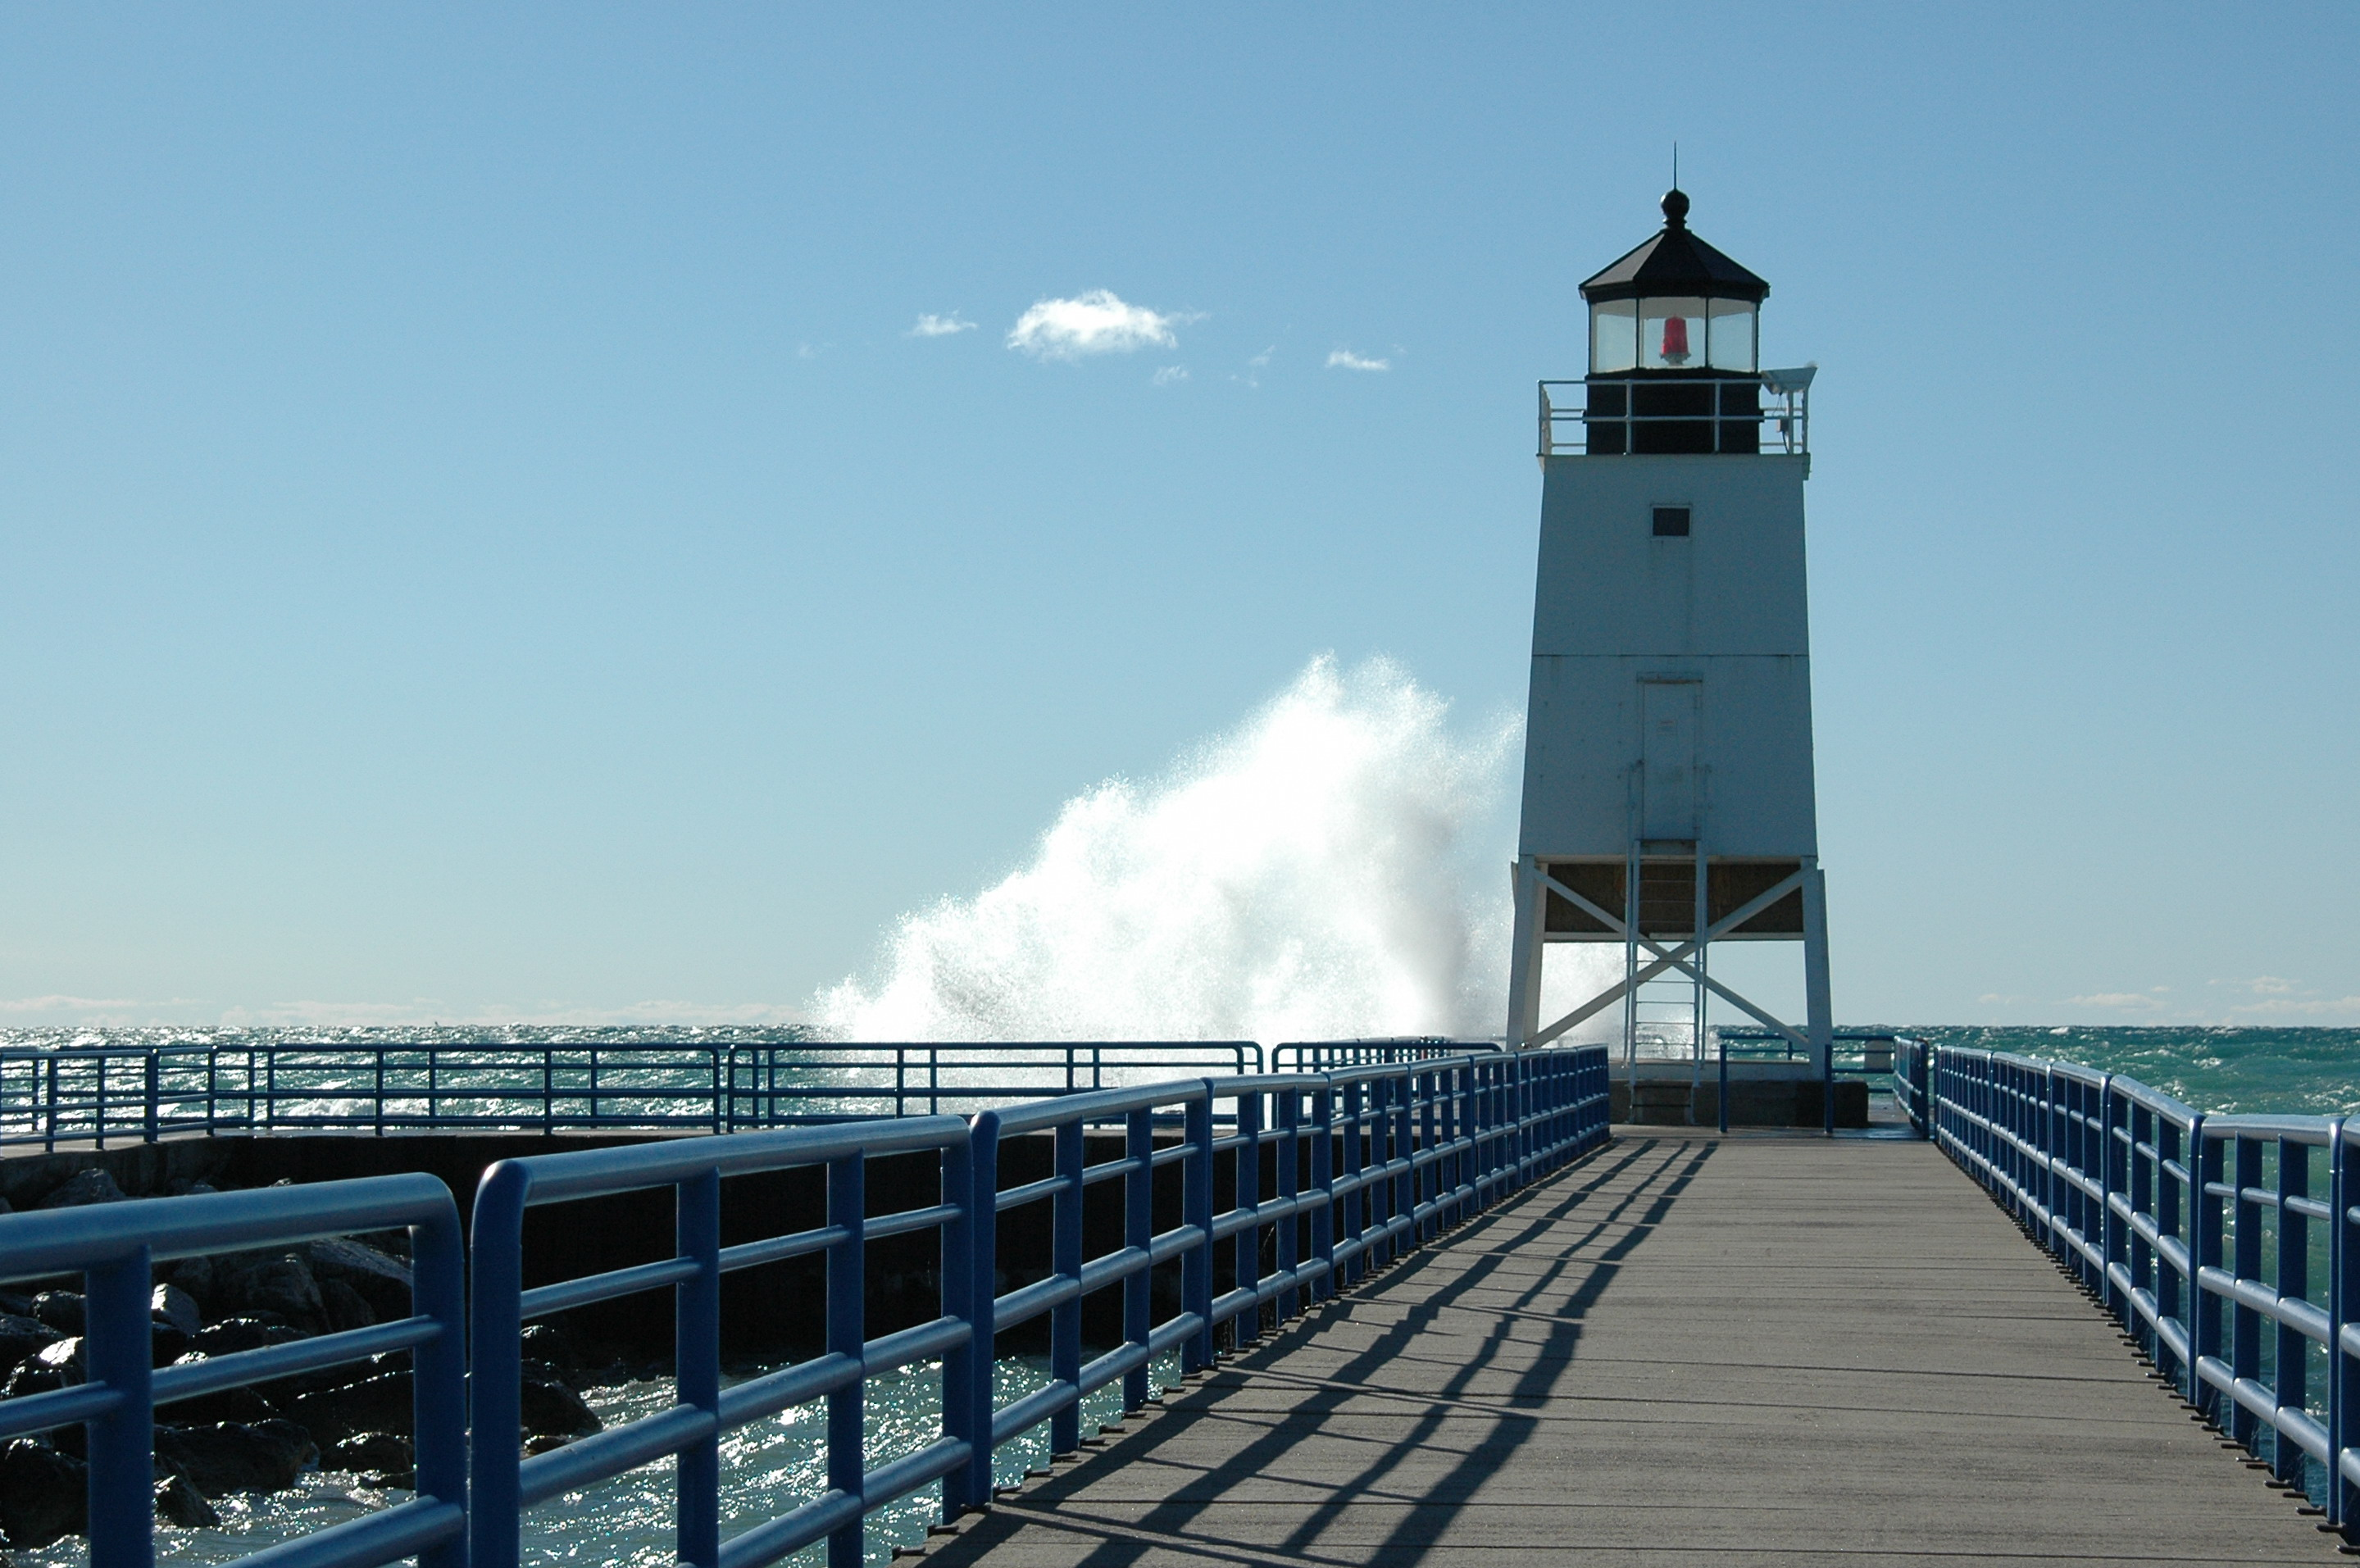 File:Charlevoix South Pier Light Station.jpg - Wikimedia Commons